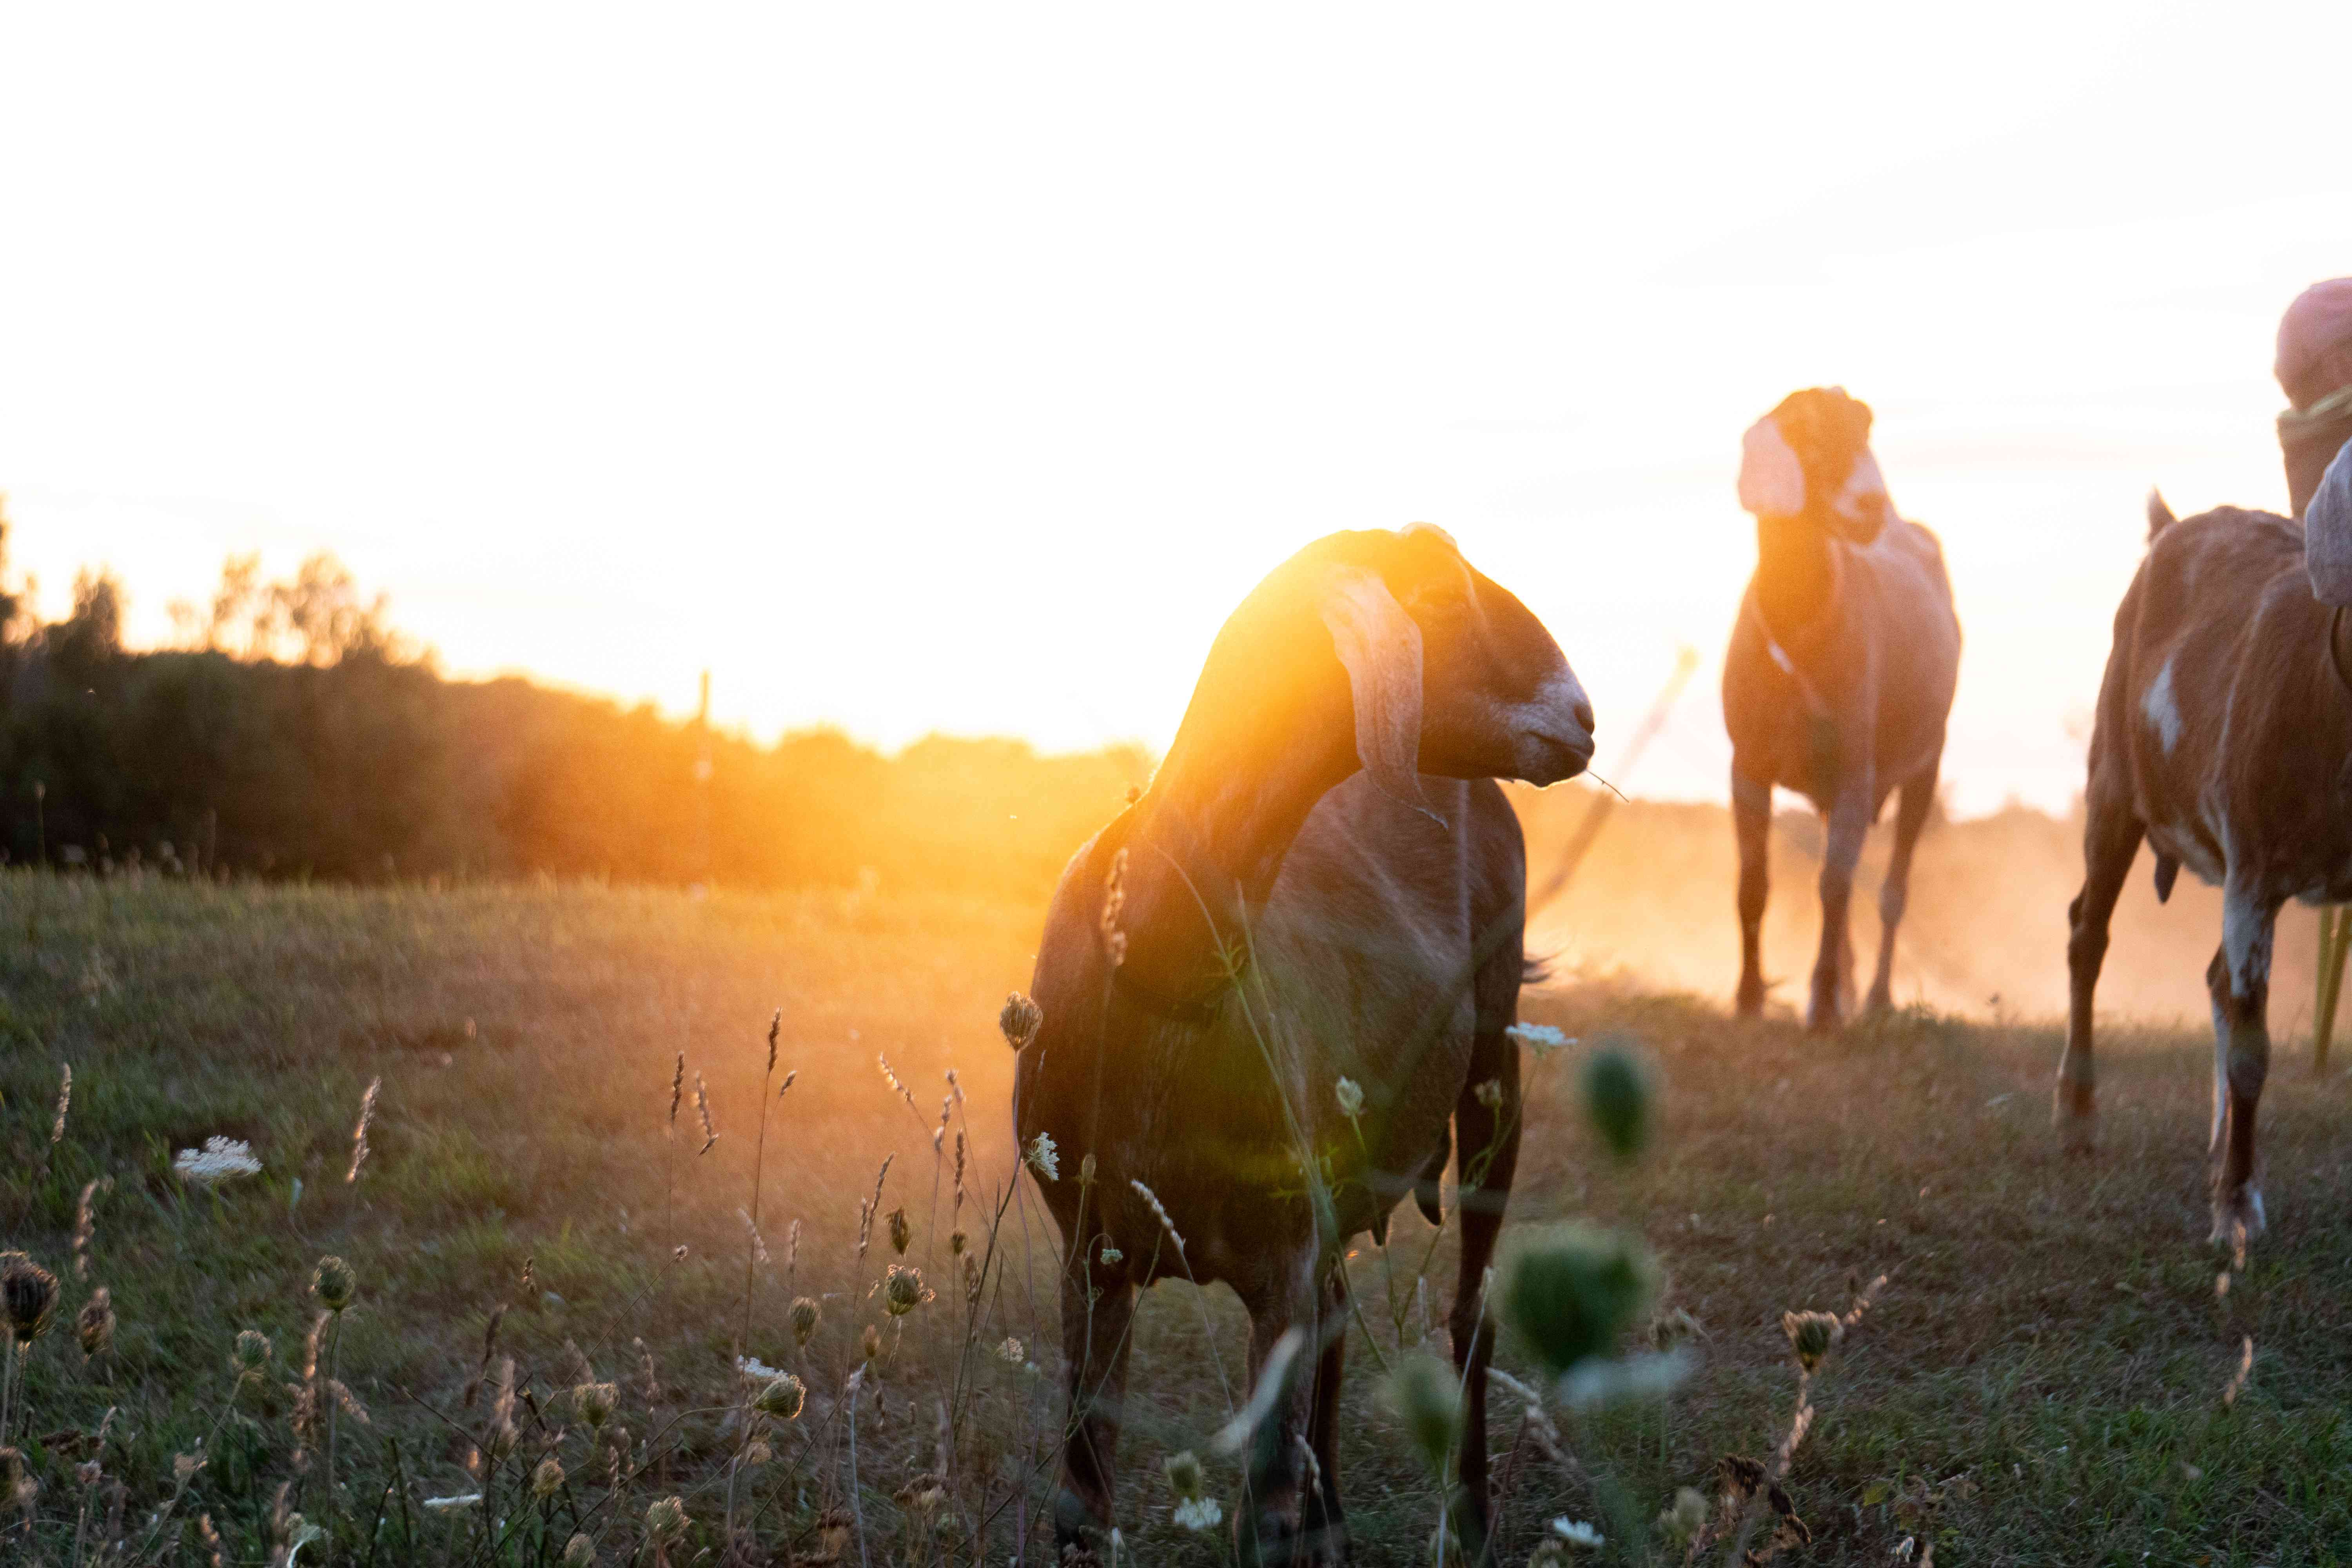 goats in an open pasture during sunset